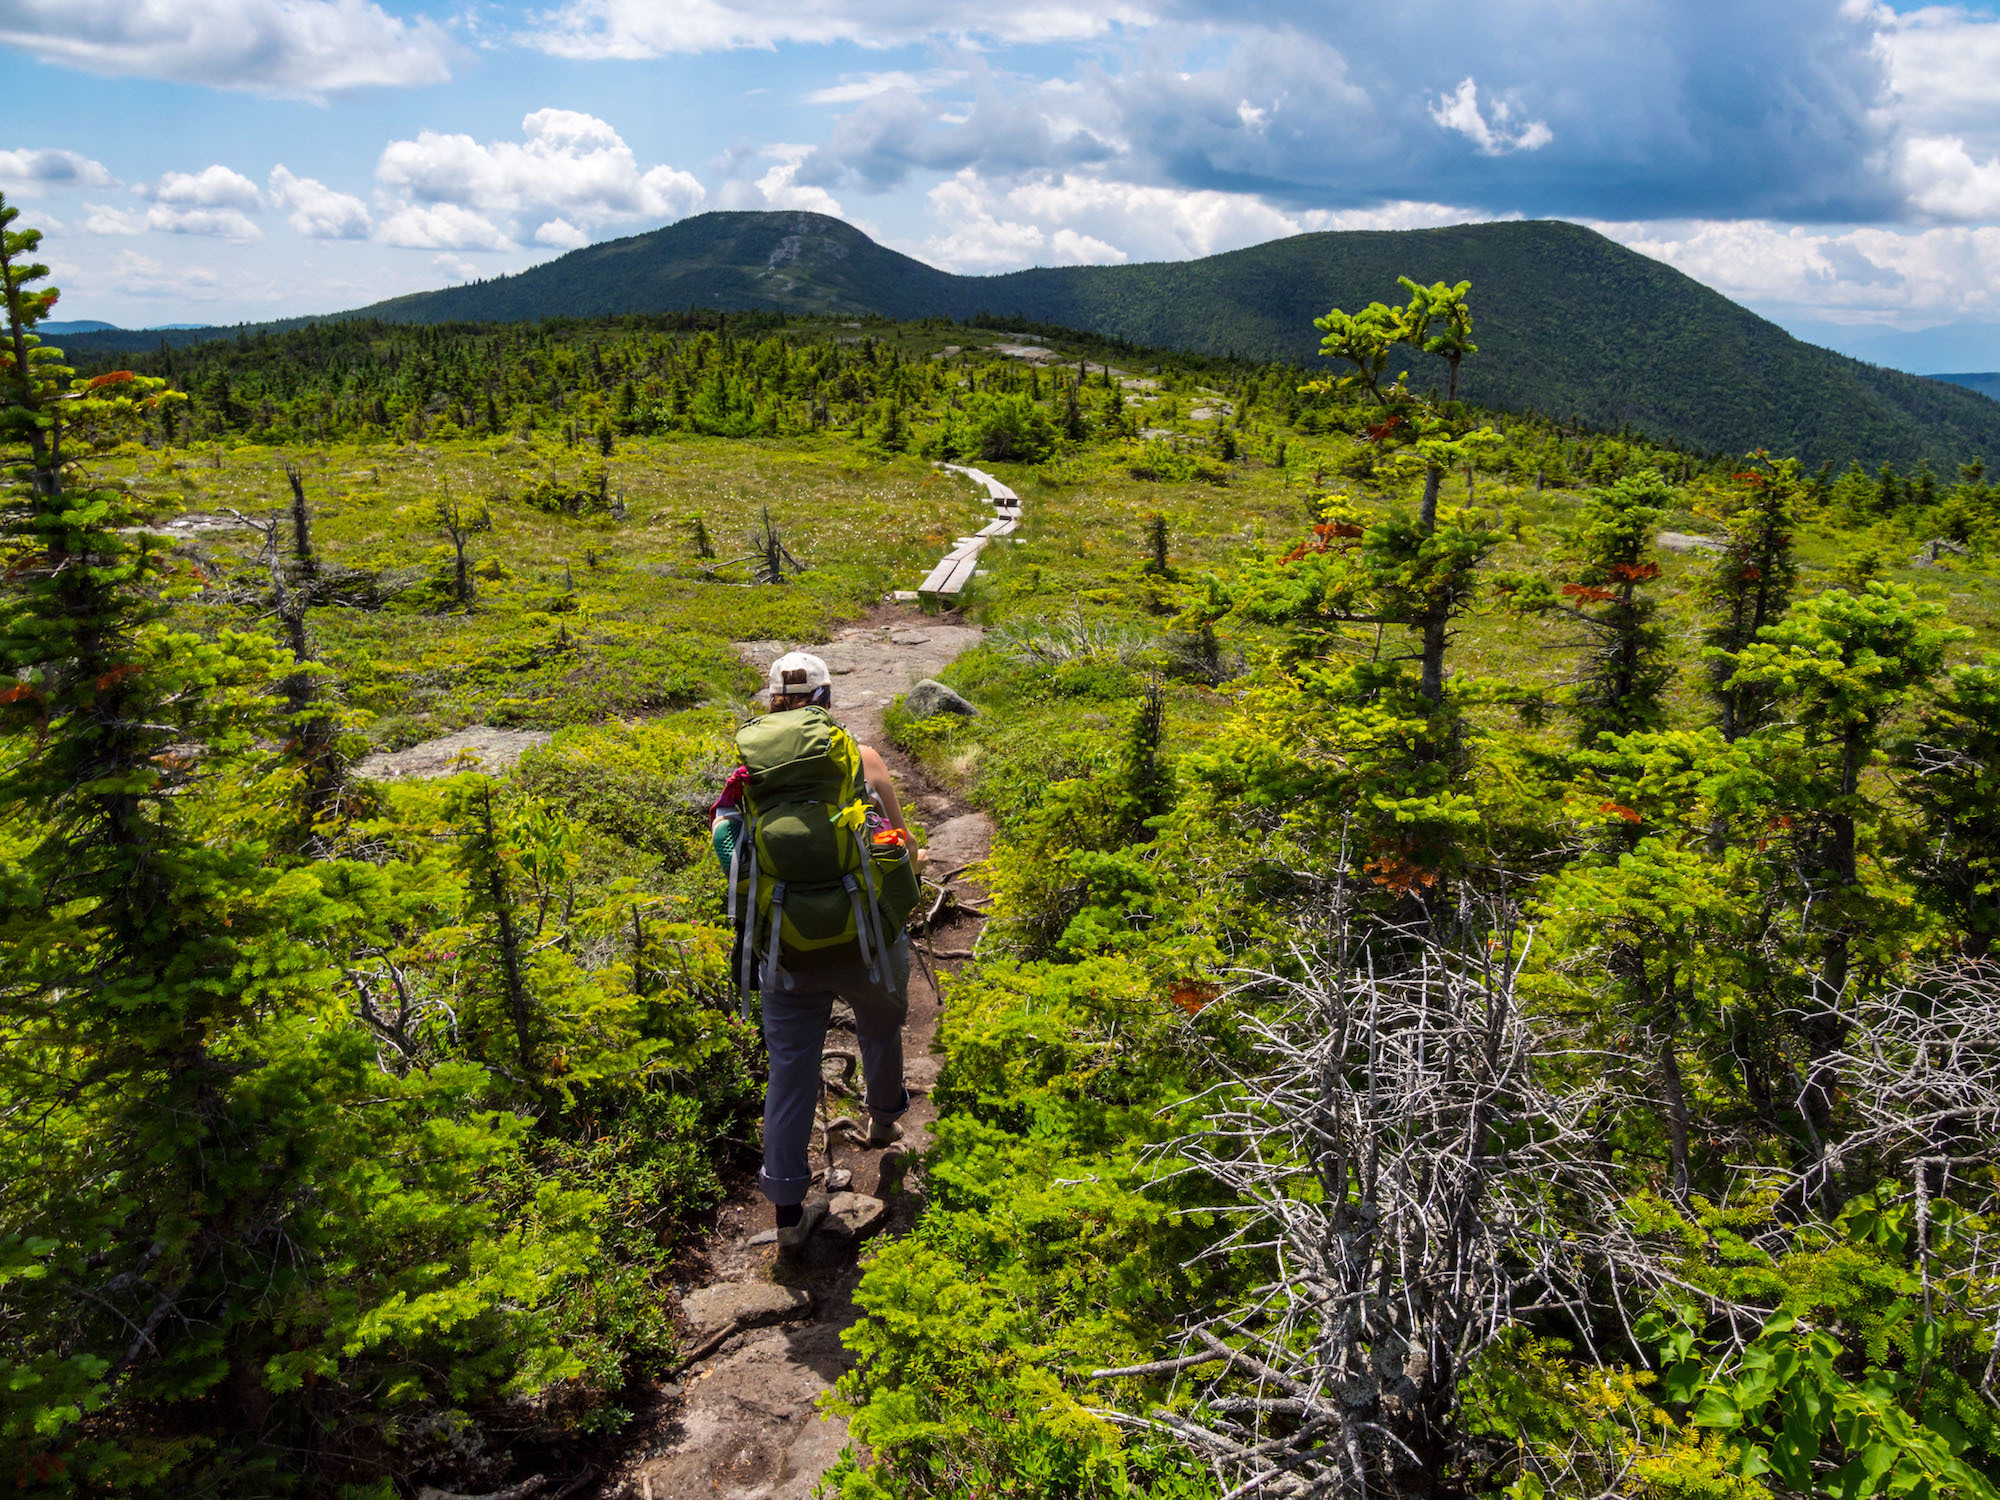 Get your steps in by virtually hiking the Appalachian Trail